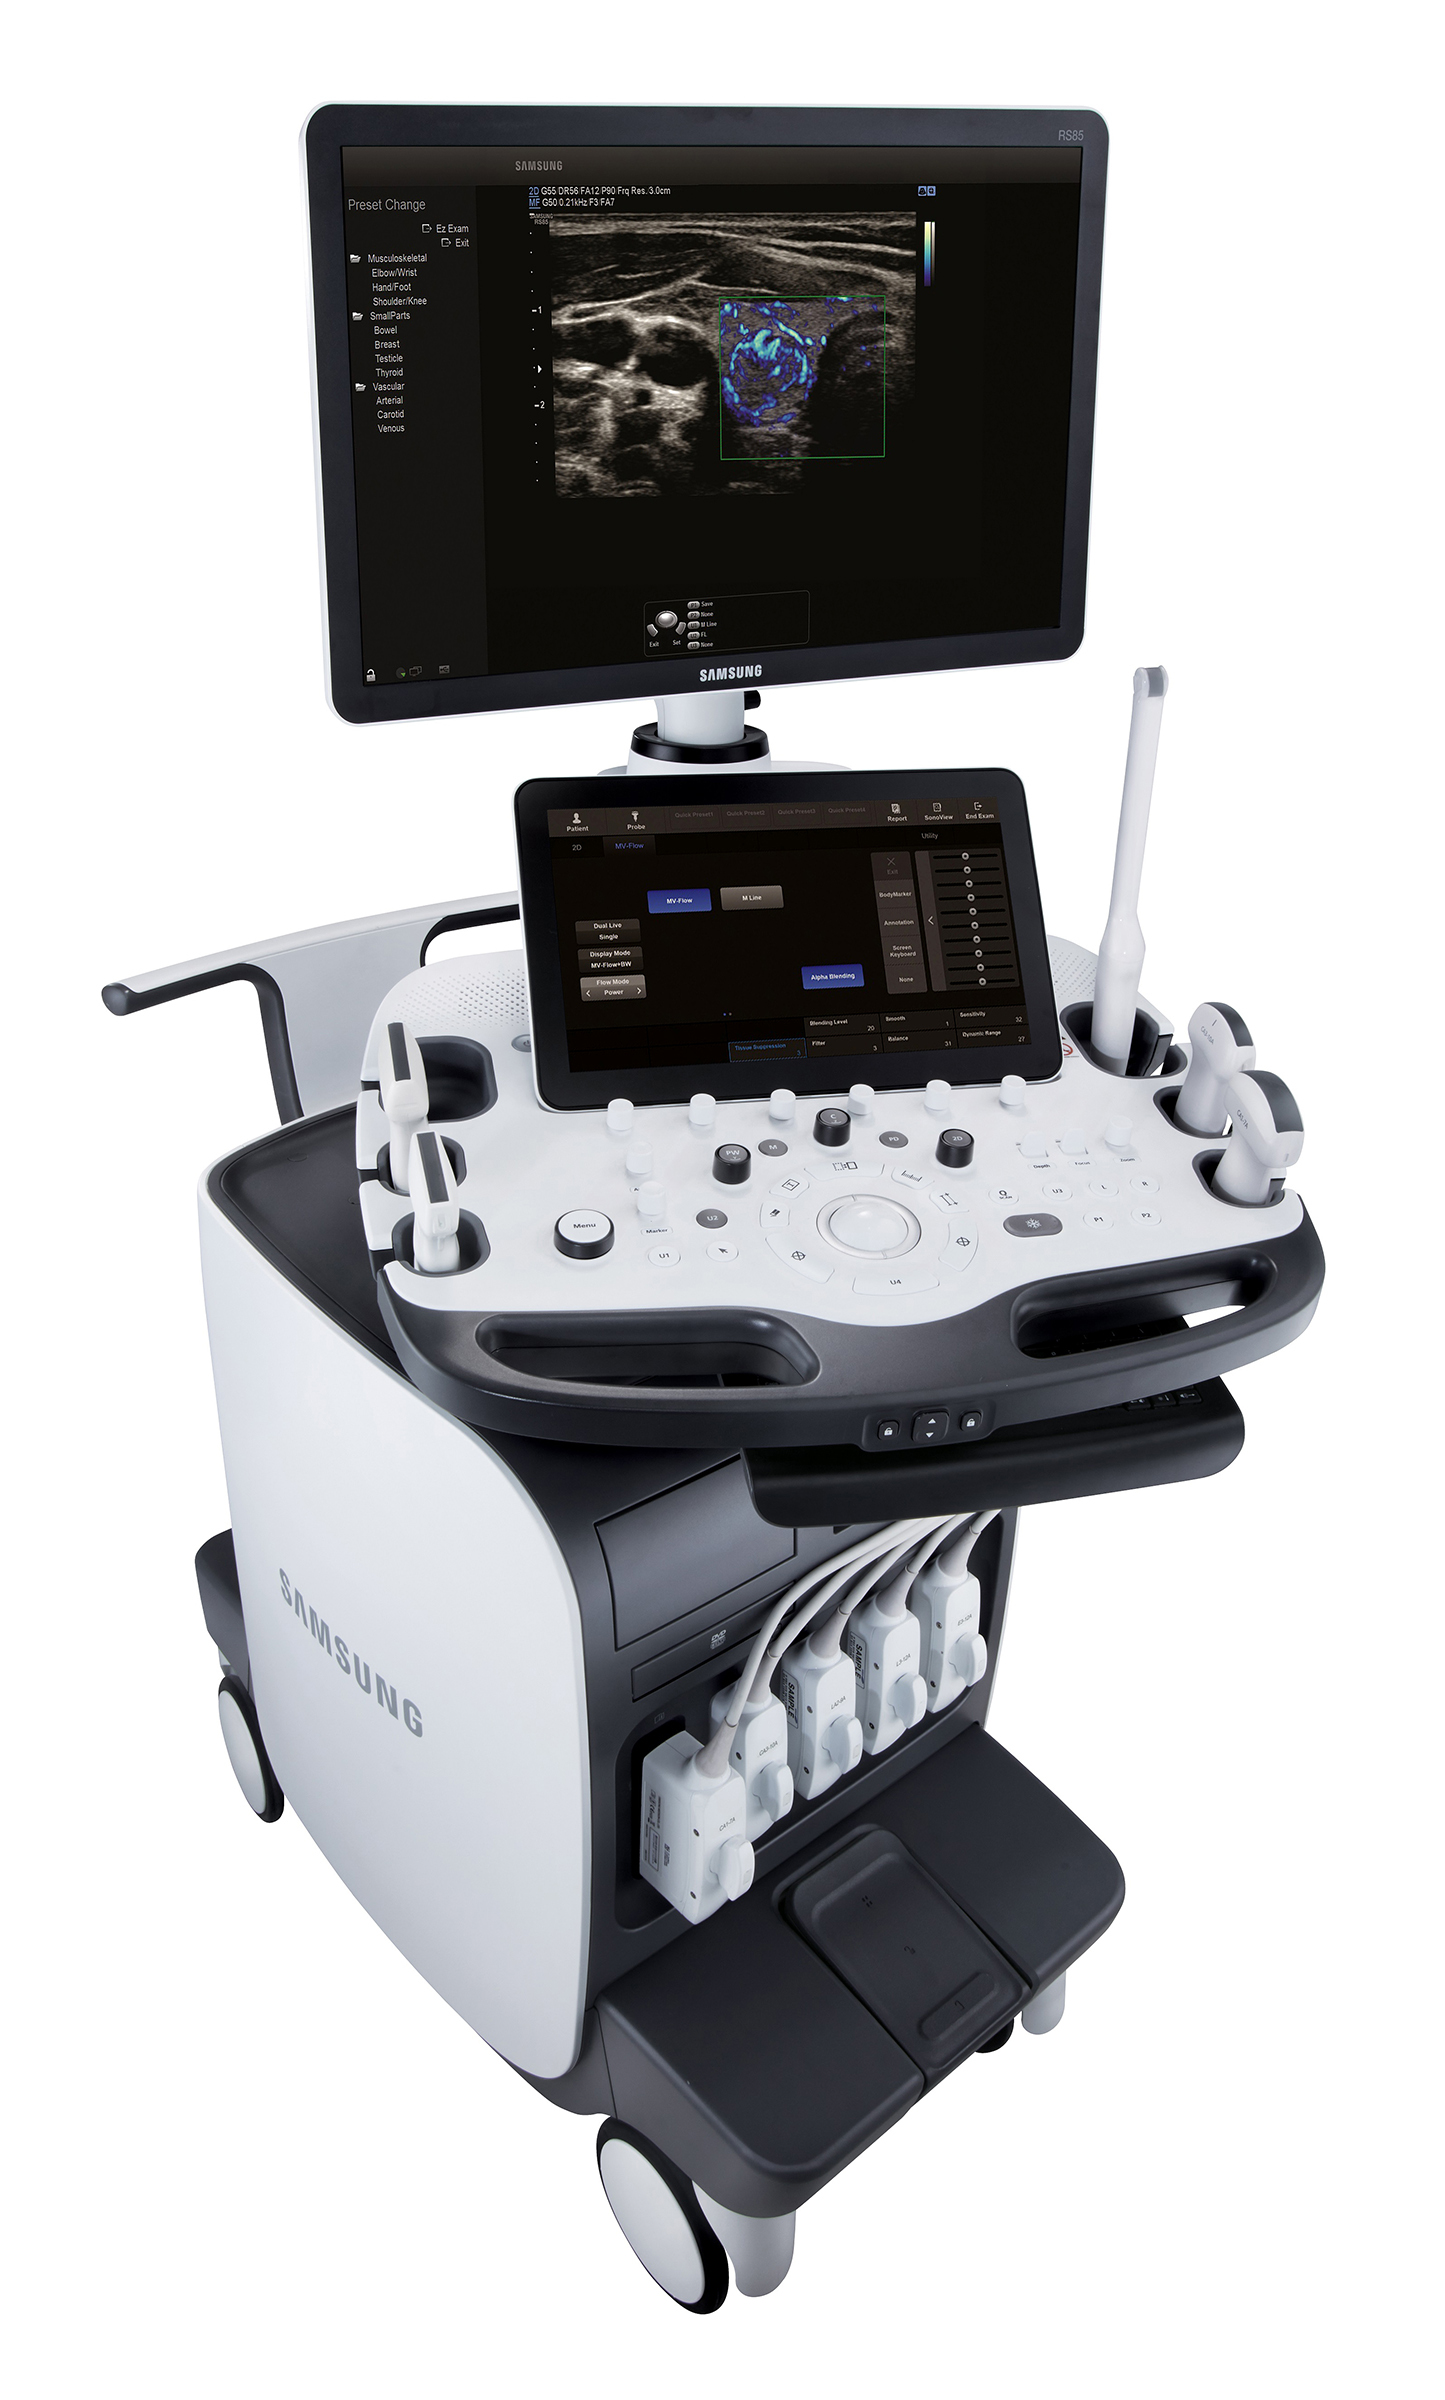 Samsung Receives Fda Clearance For Premium Ultrasound